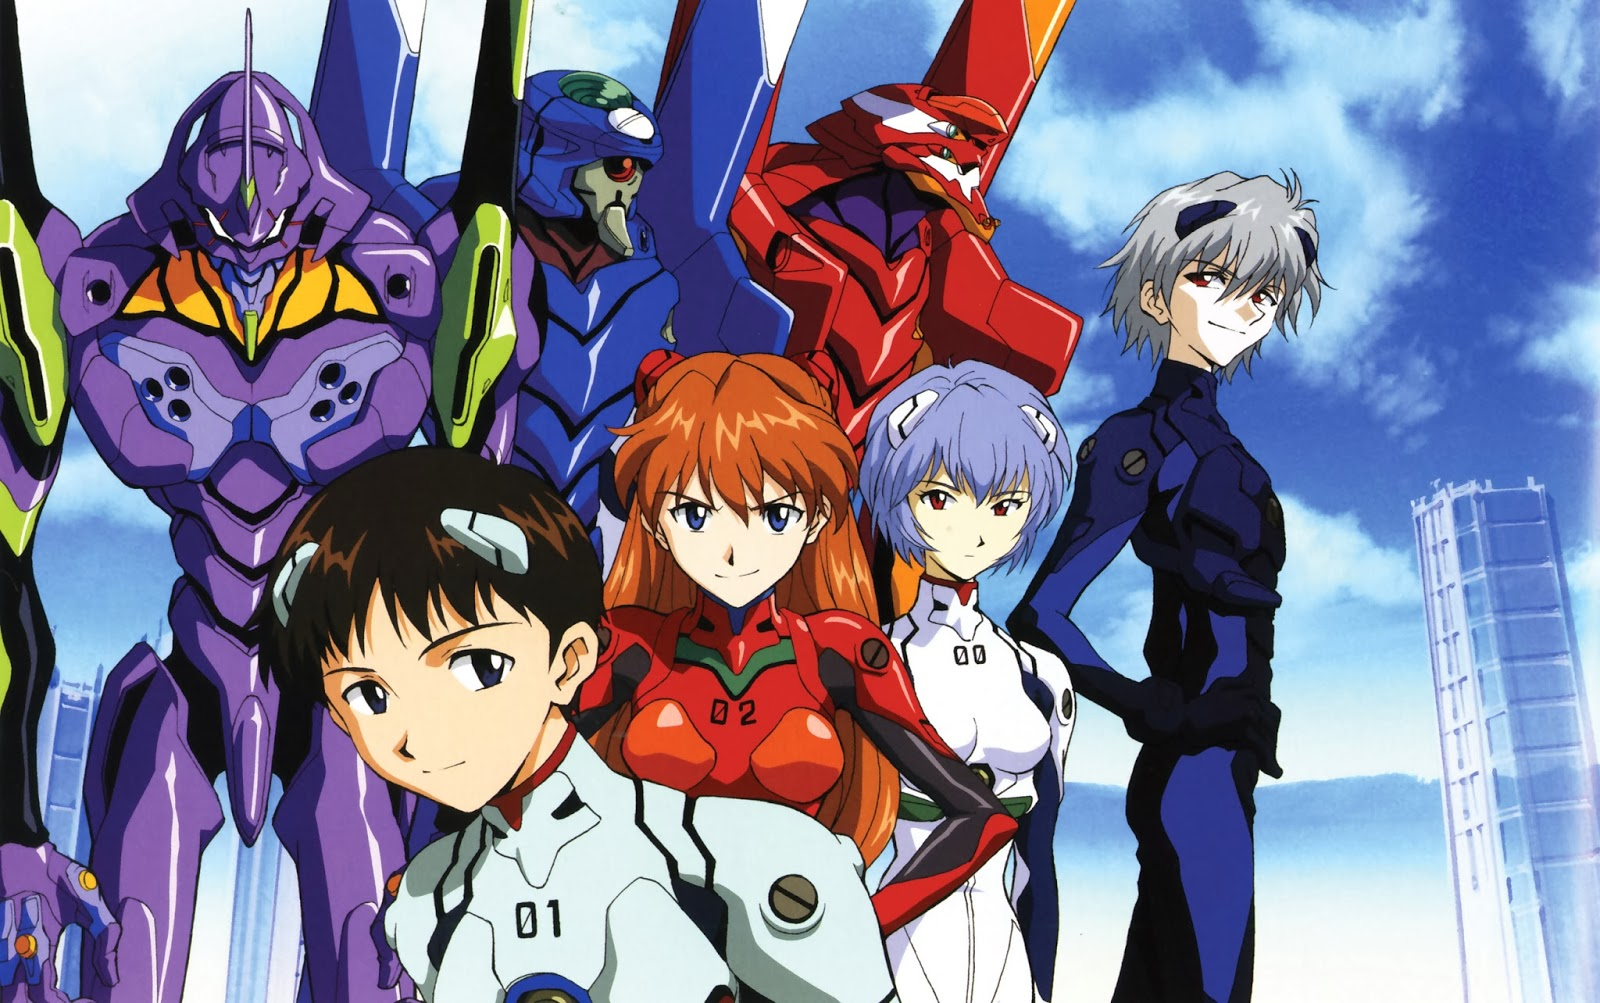 What is the main theme of Neon Genesis Evangelion?